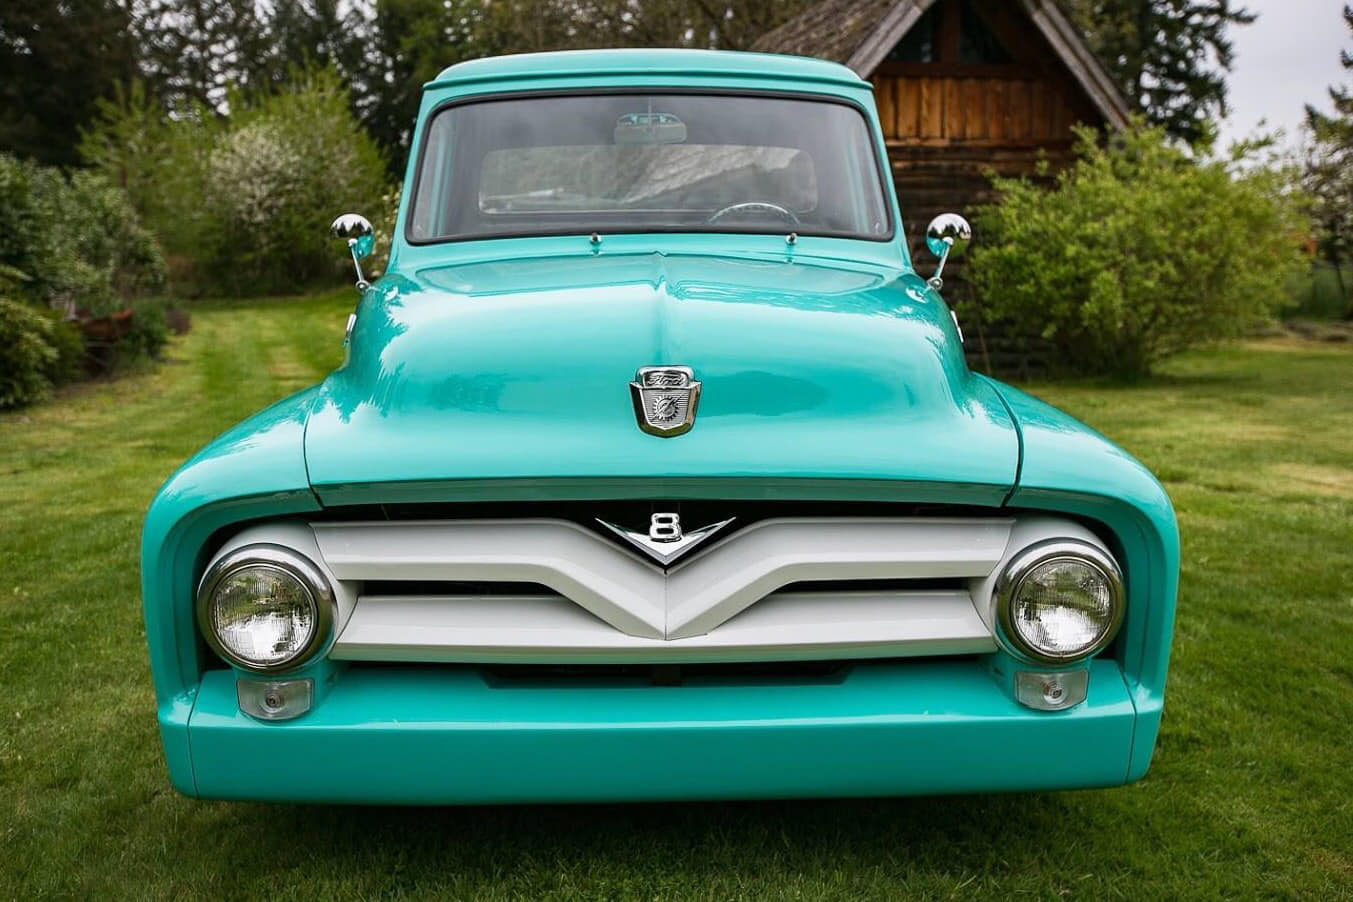 1955 Ford F100 Pickup With Ford 302 Engine 7.jpg